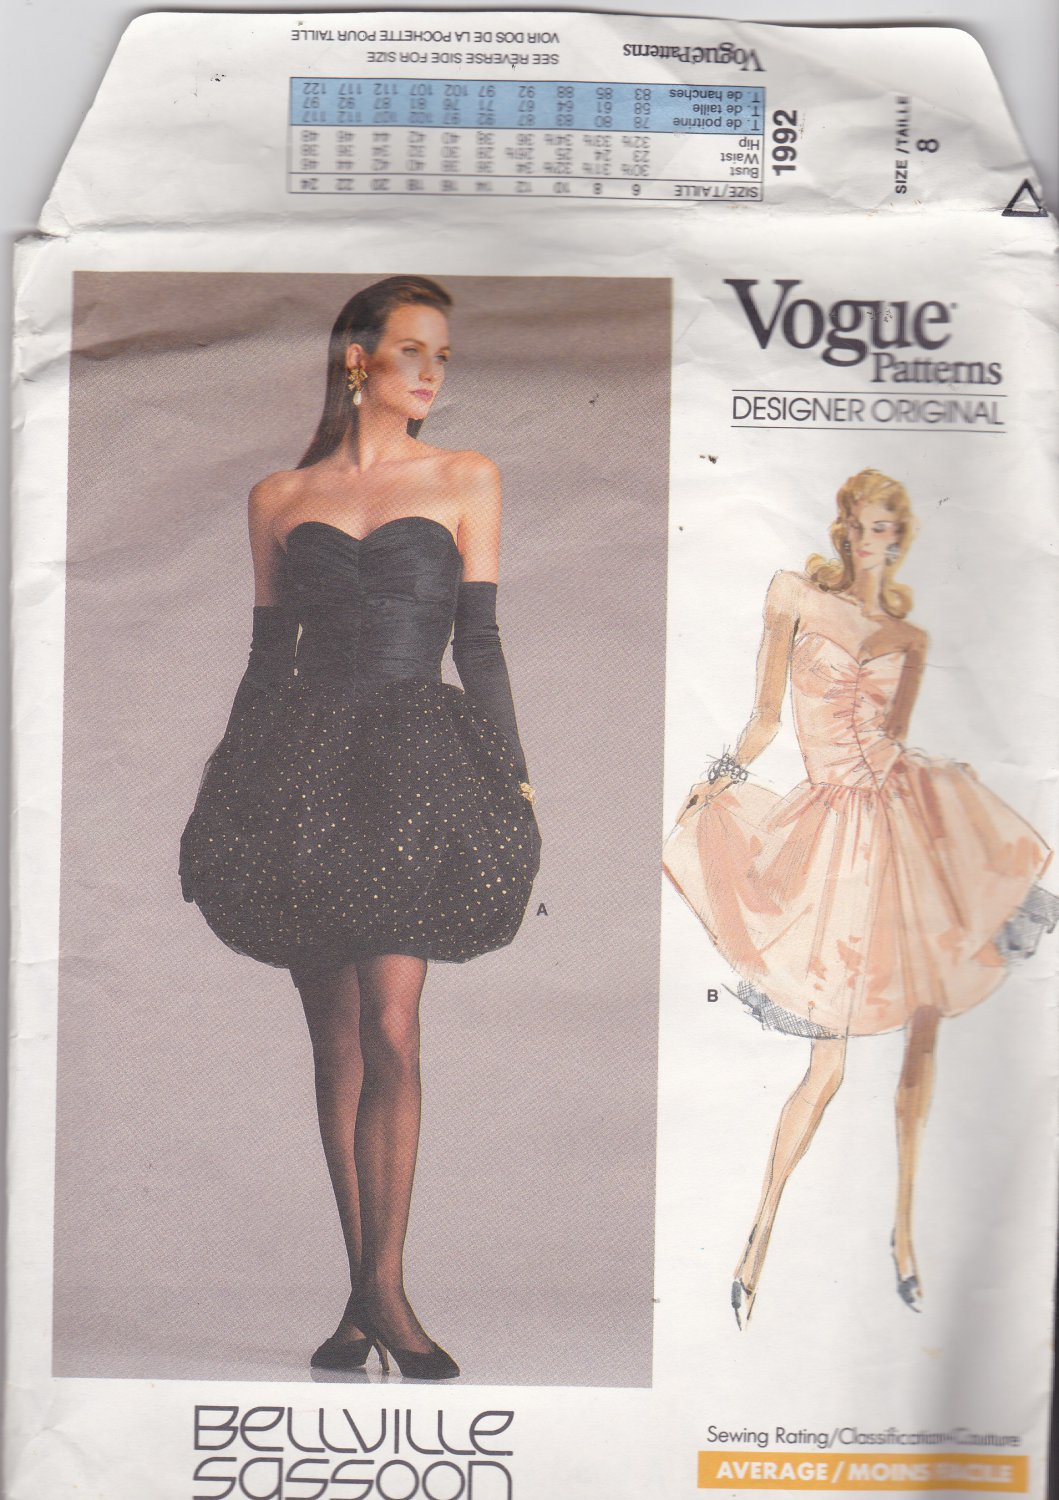 Vogue 1992 Pattern Uncut Size 8 Above Knee Strapless Party Dress Bellville Sassoon